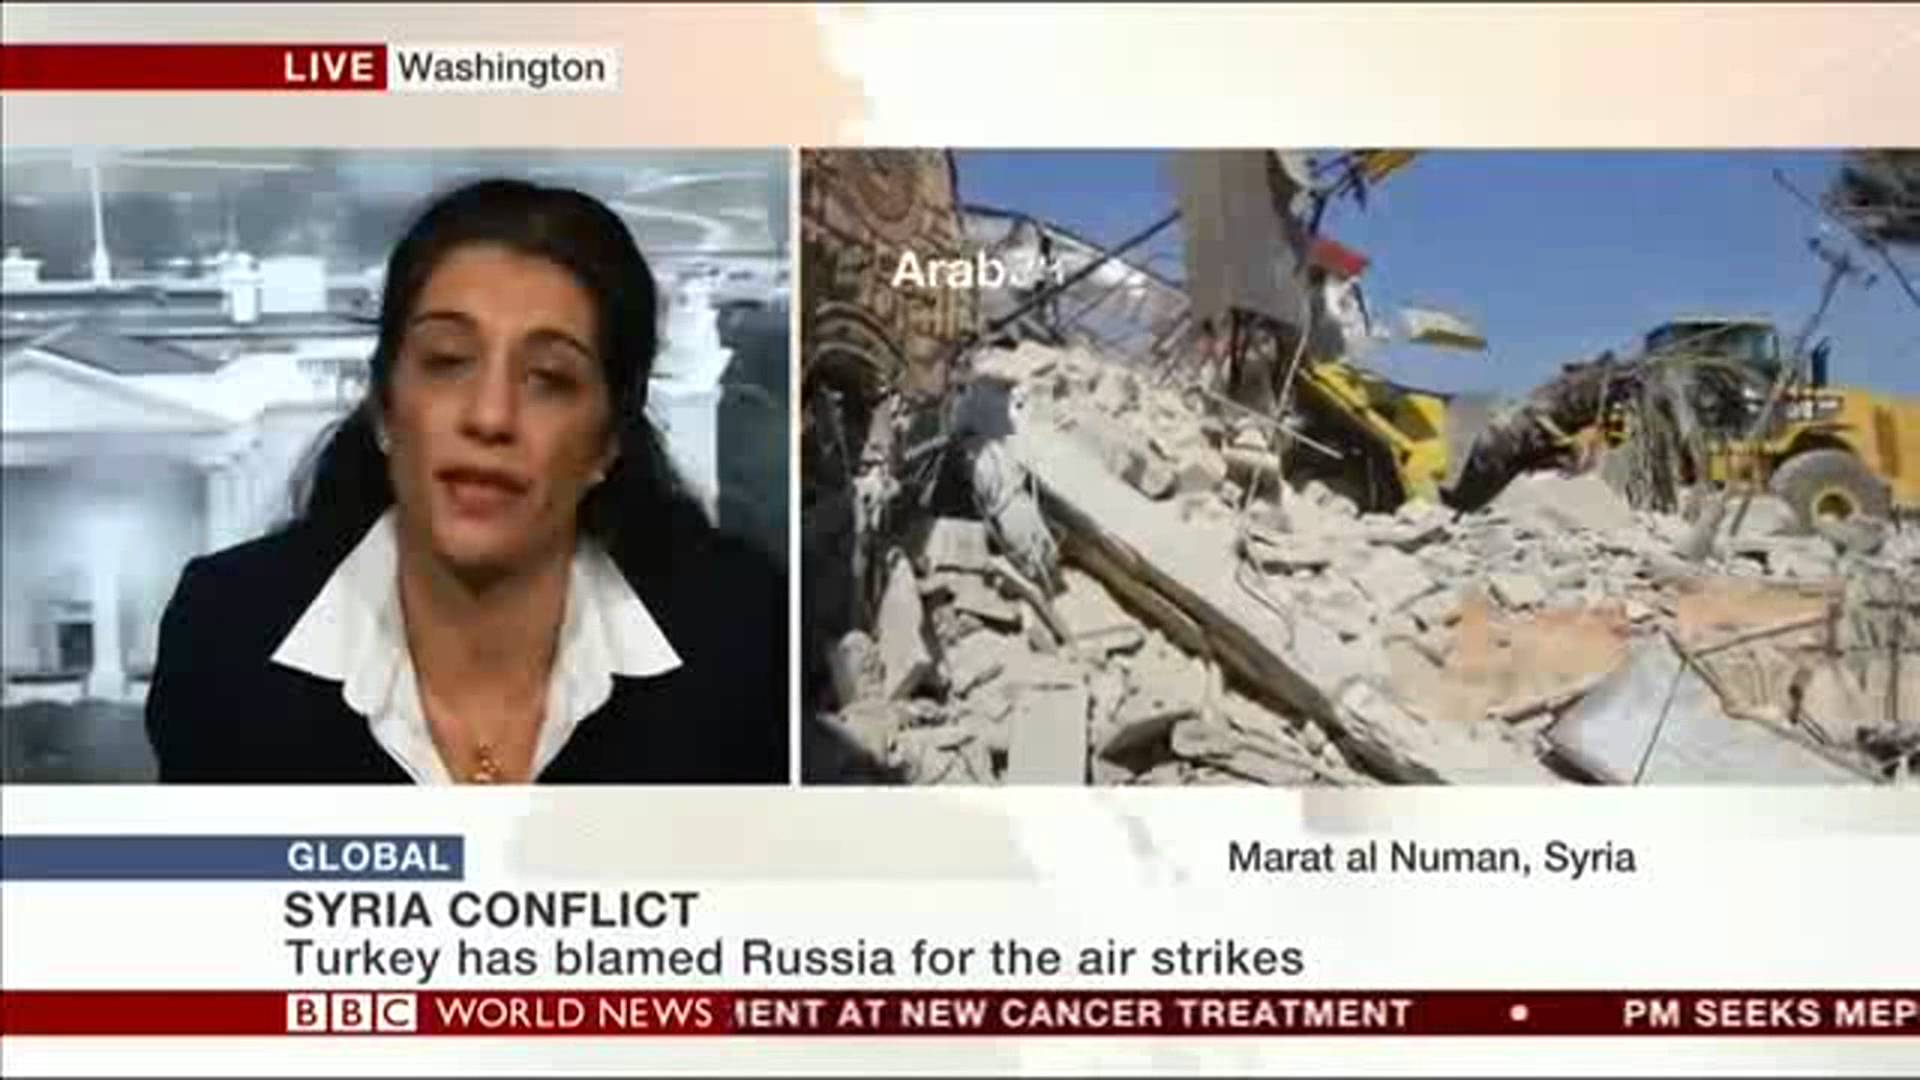 Sanam Naraghi-Anderlini speaks to BBC World News about the Syrian conflict